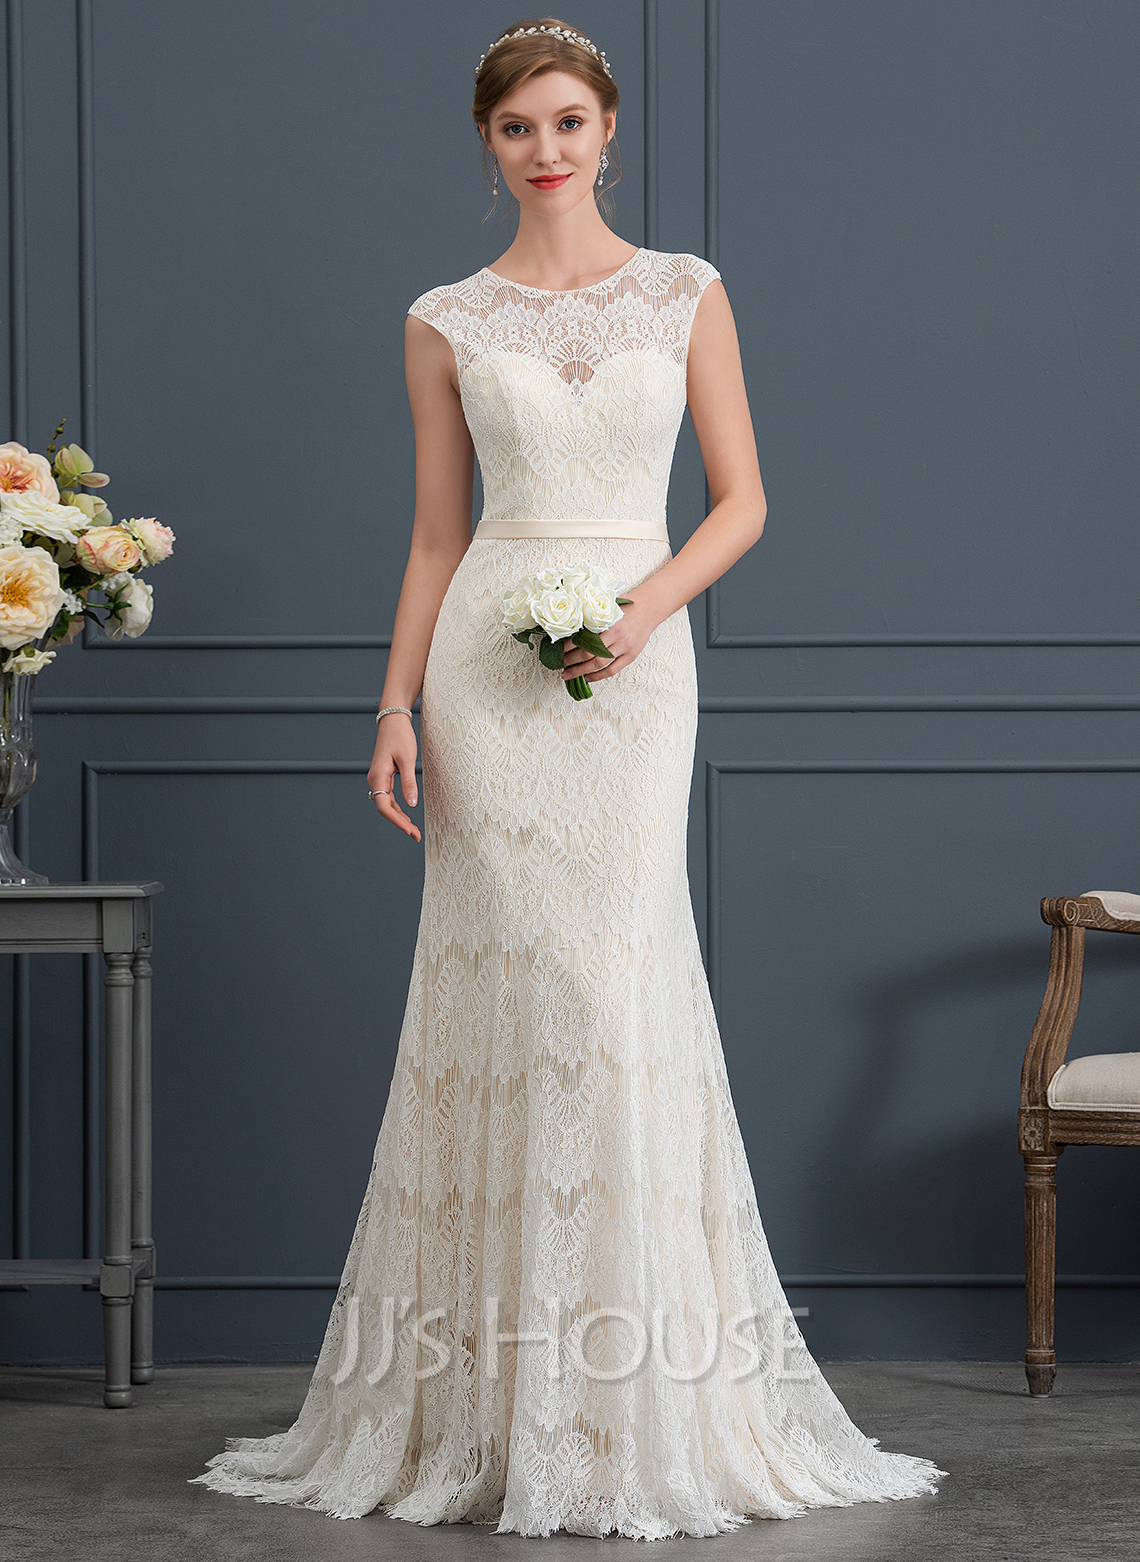 dd666b8cfdcce Trumpet/Mermaid Scoop Neck Sweep Train Lace Wedding Dress (002171940 ...